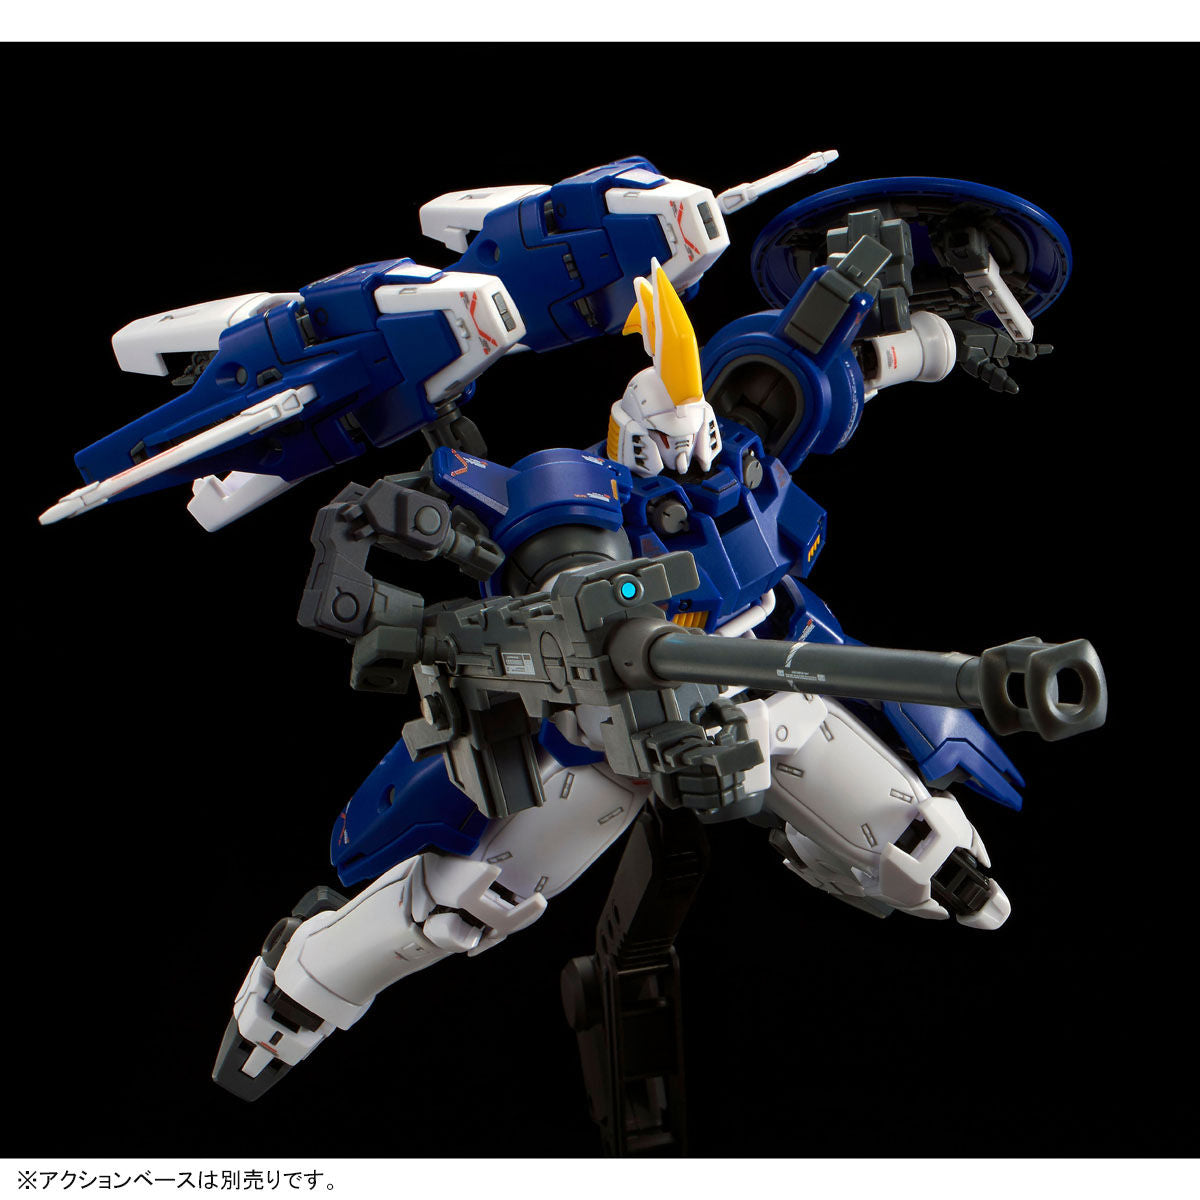 P-Bandai: RG 1/144 Tallgeese II [END of June 2020]